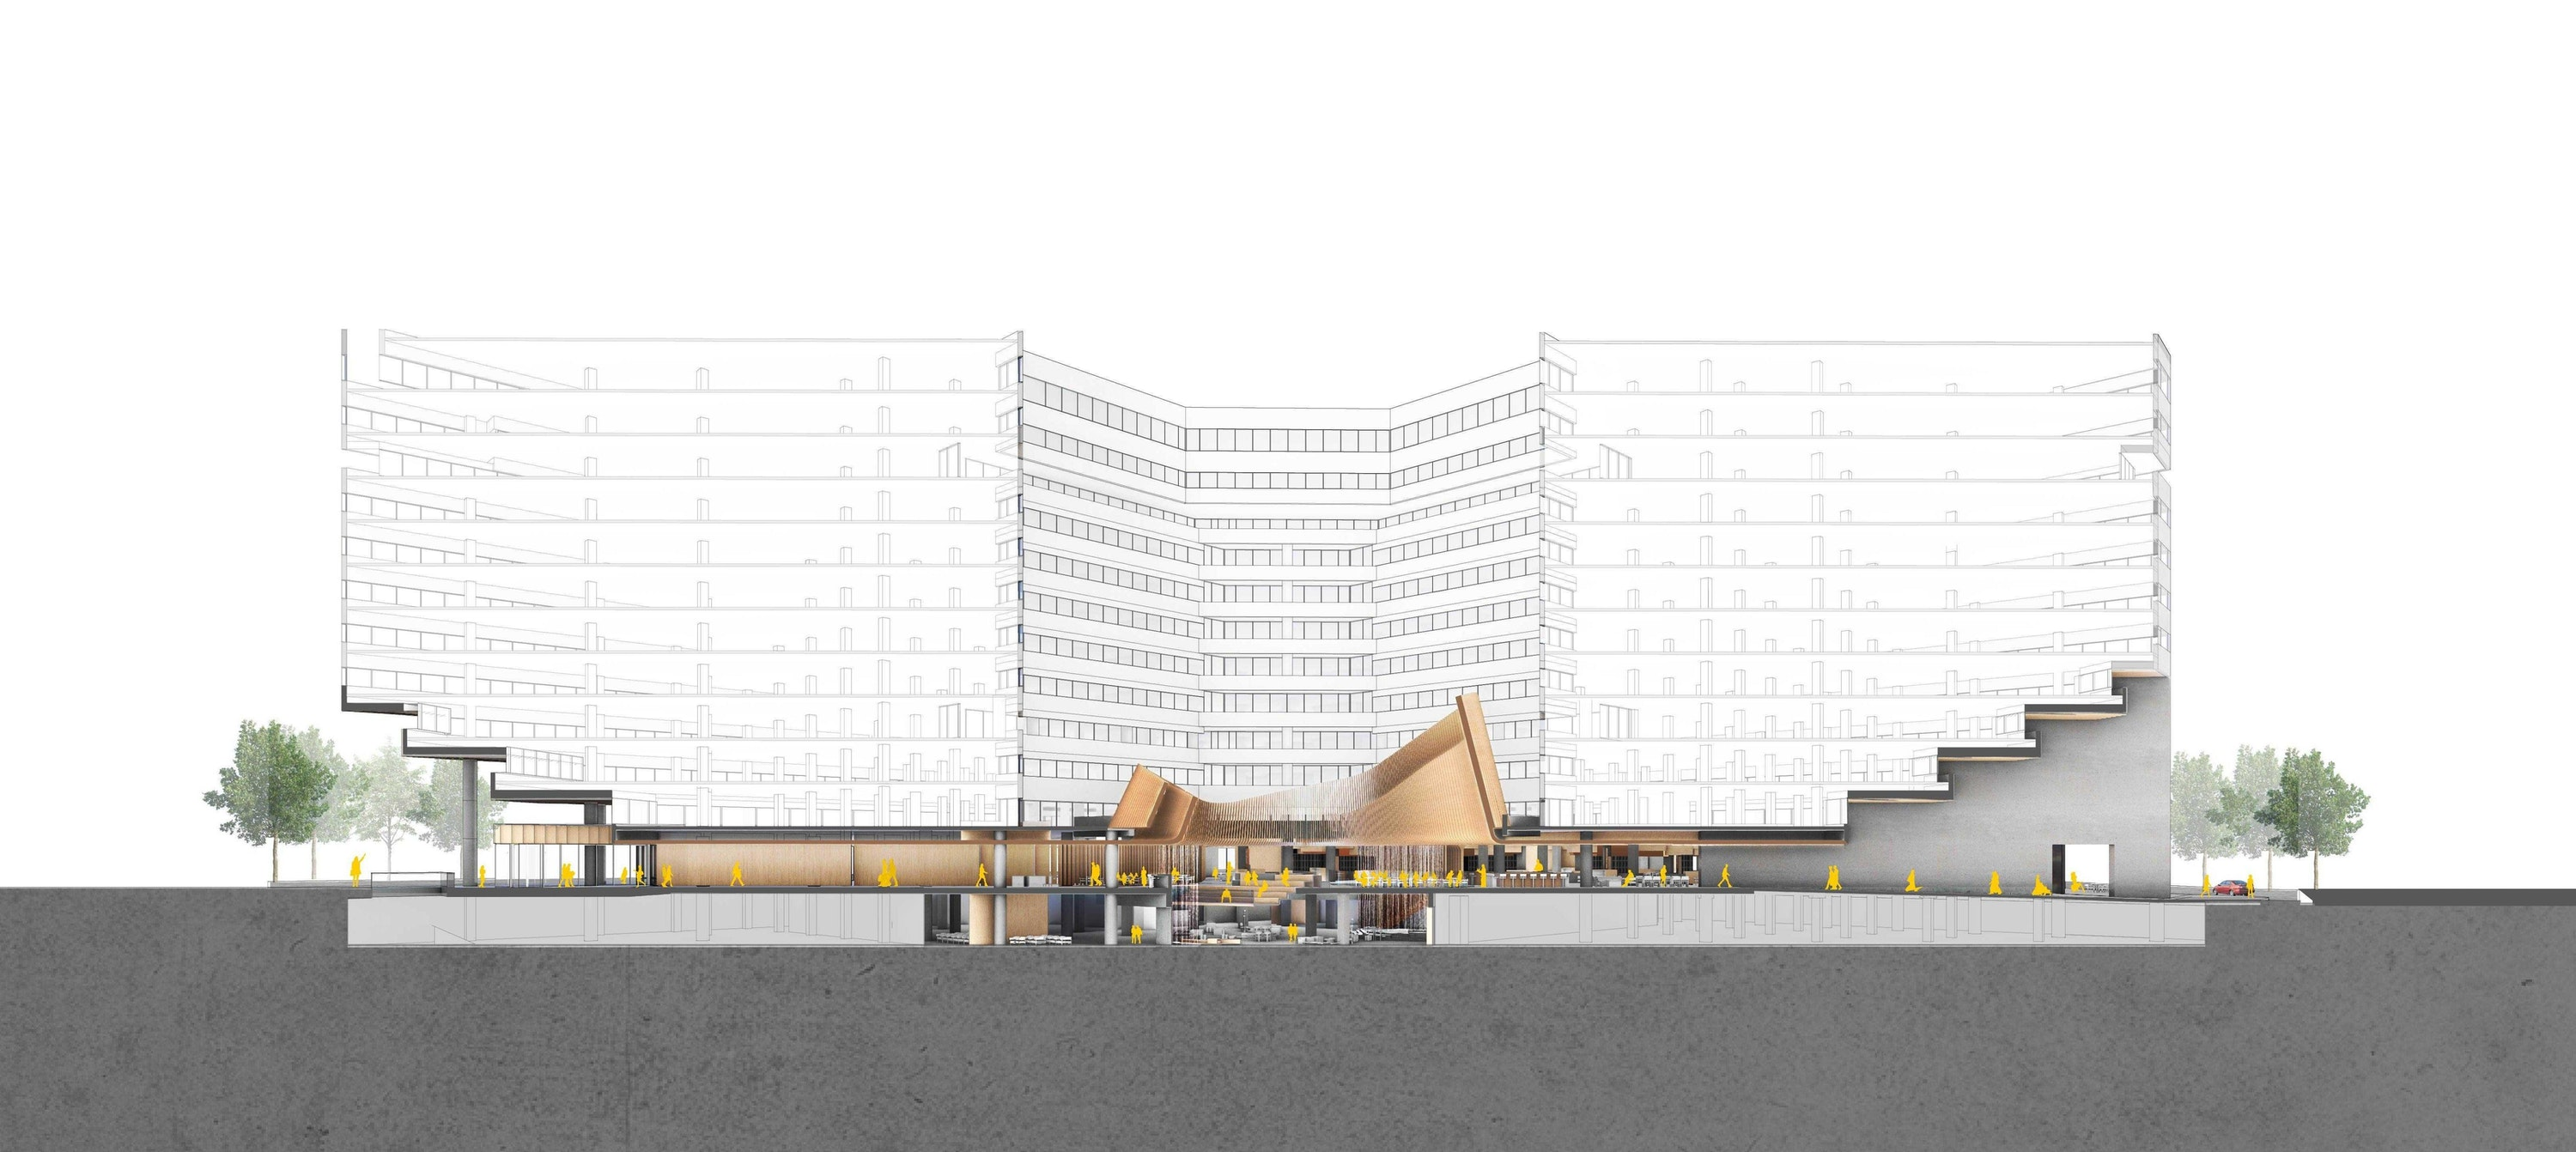 isq 070319 SECTION B rendering 01